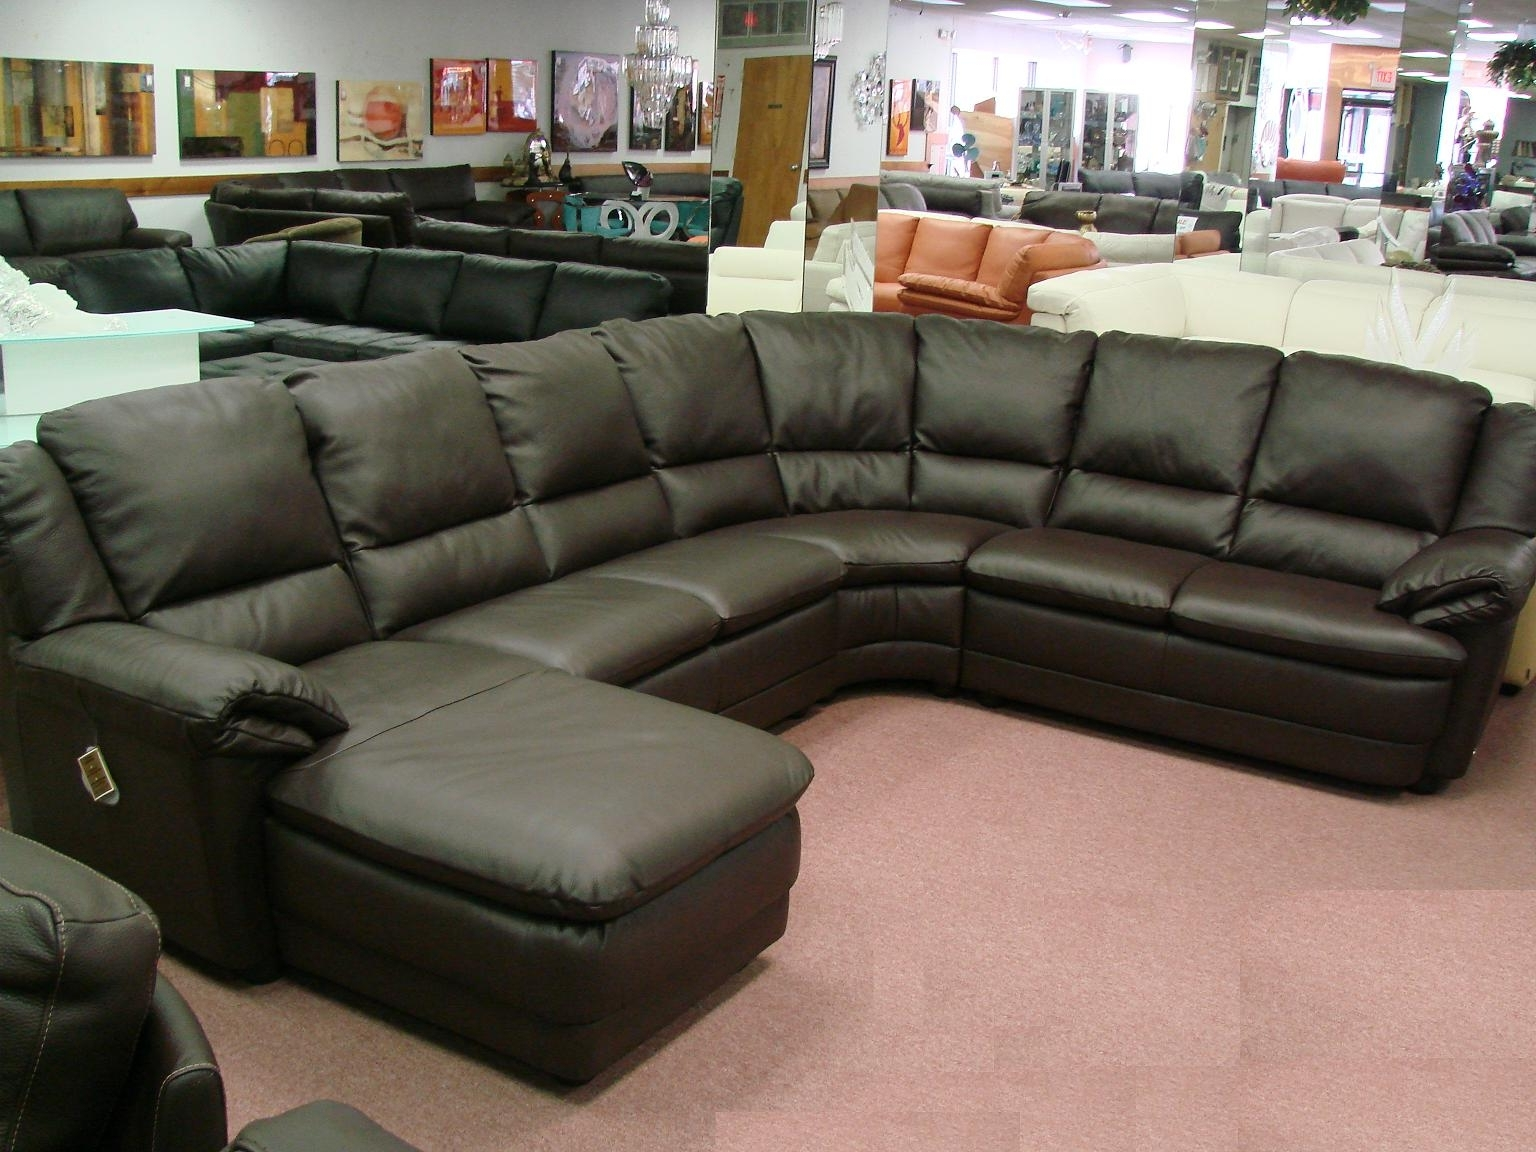 Recent Couch: Wonderful Deep Set Couch Deep Lounge Sofa, Best Deep Sofa In On Sale Sectional Sofas (View 12 of 15)